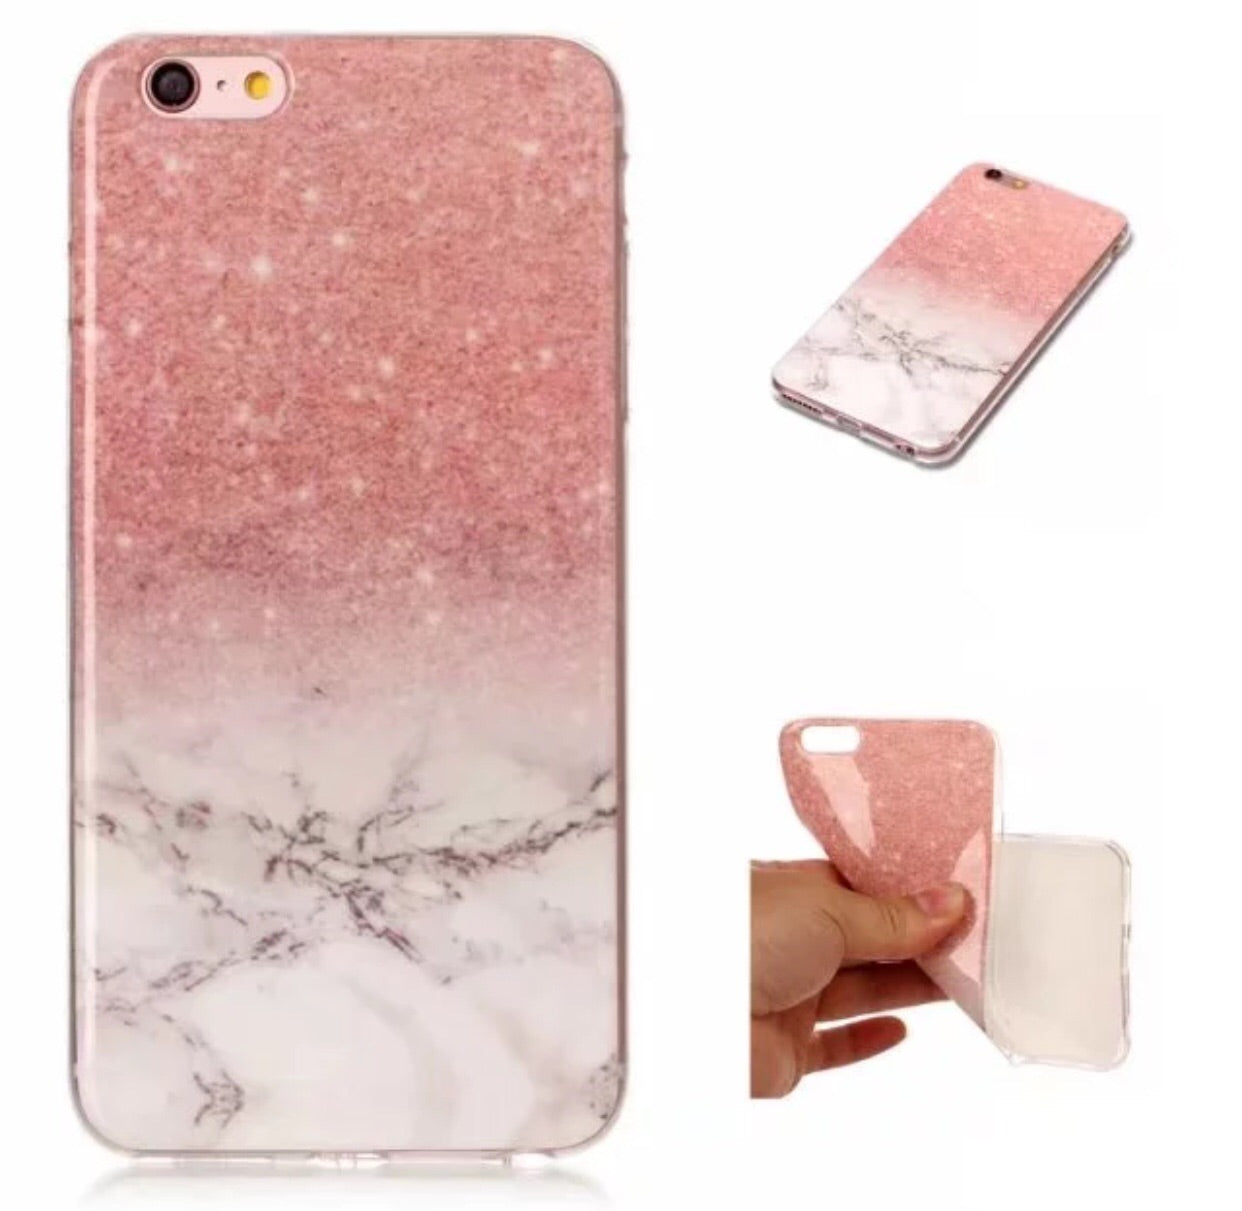 Pink Galaxy Marble Soft Silicone Phone Case iPhone 6/6s